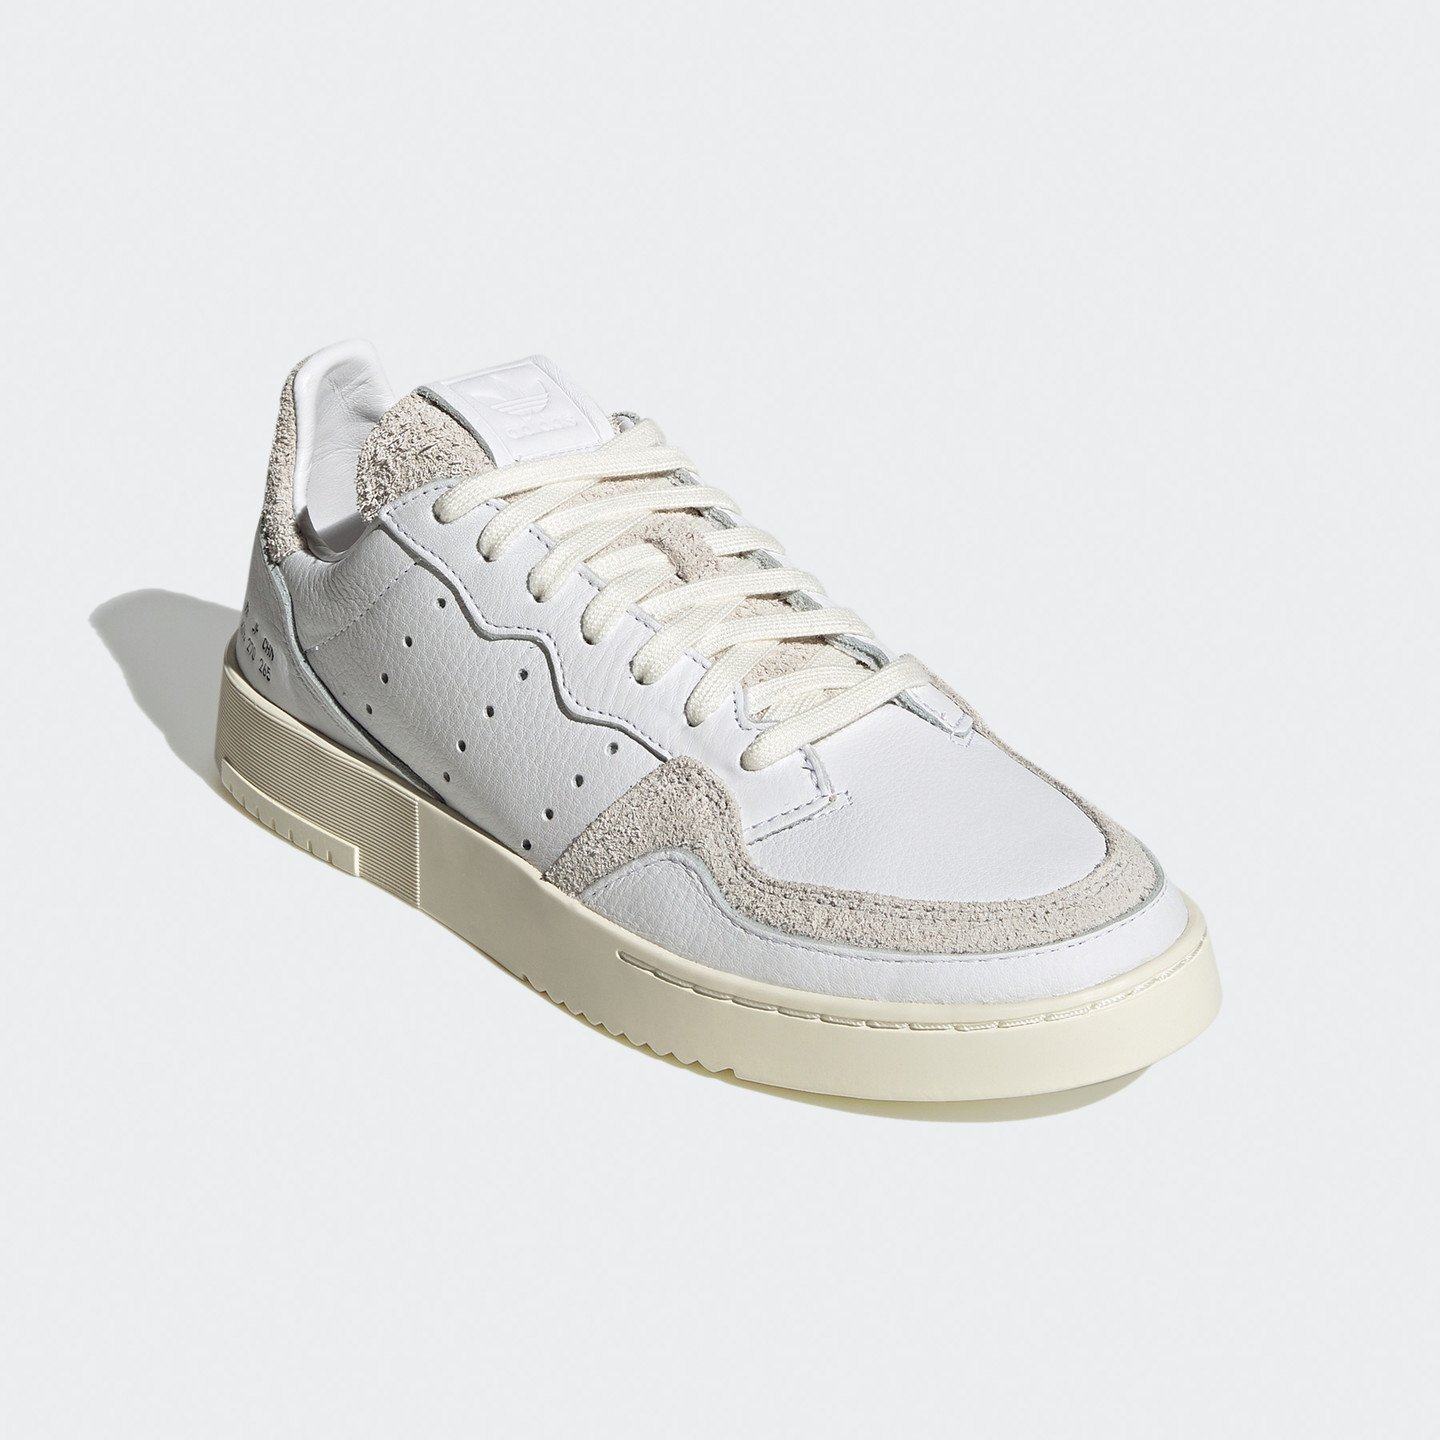 Adidas Supercourt Premium Leather Cloud White / Crystal White / Off White FY0039